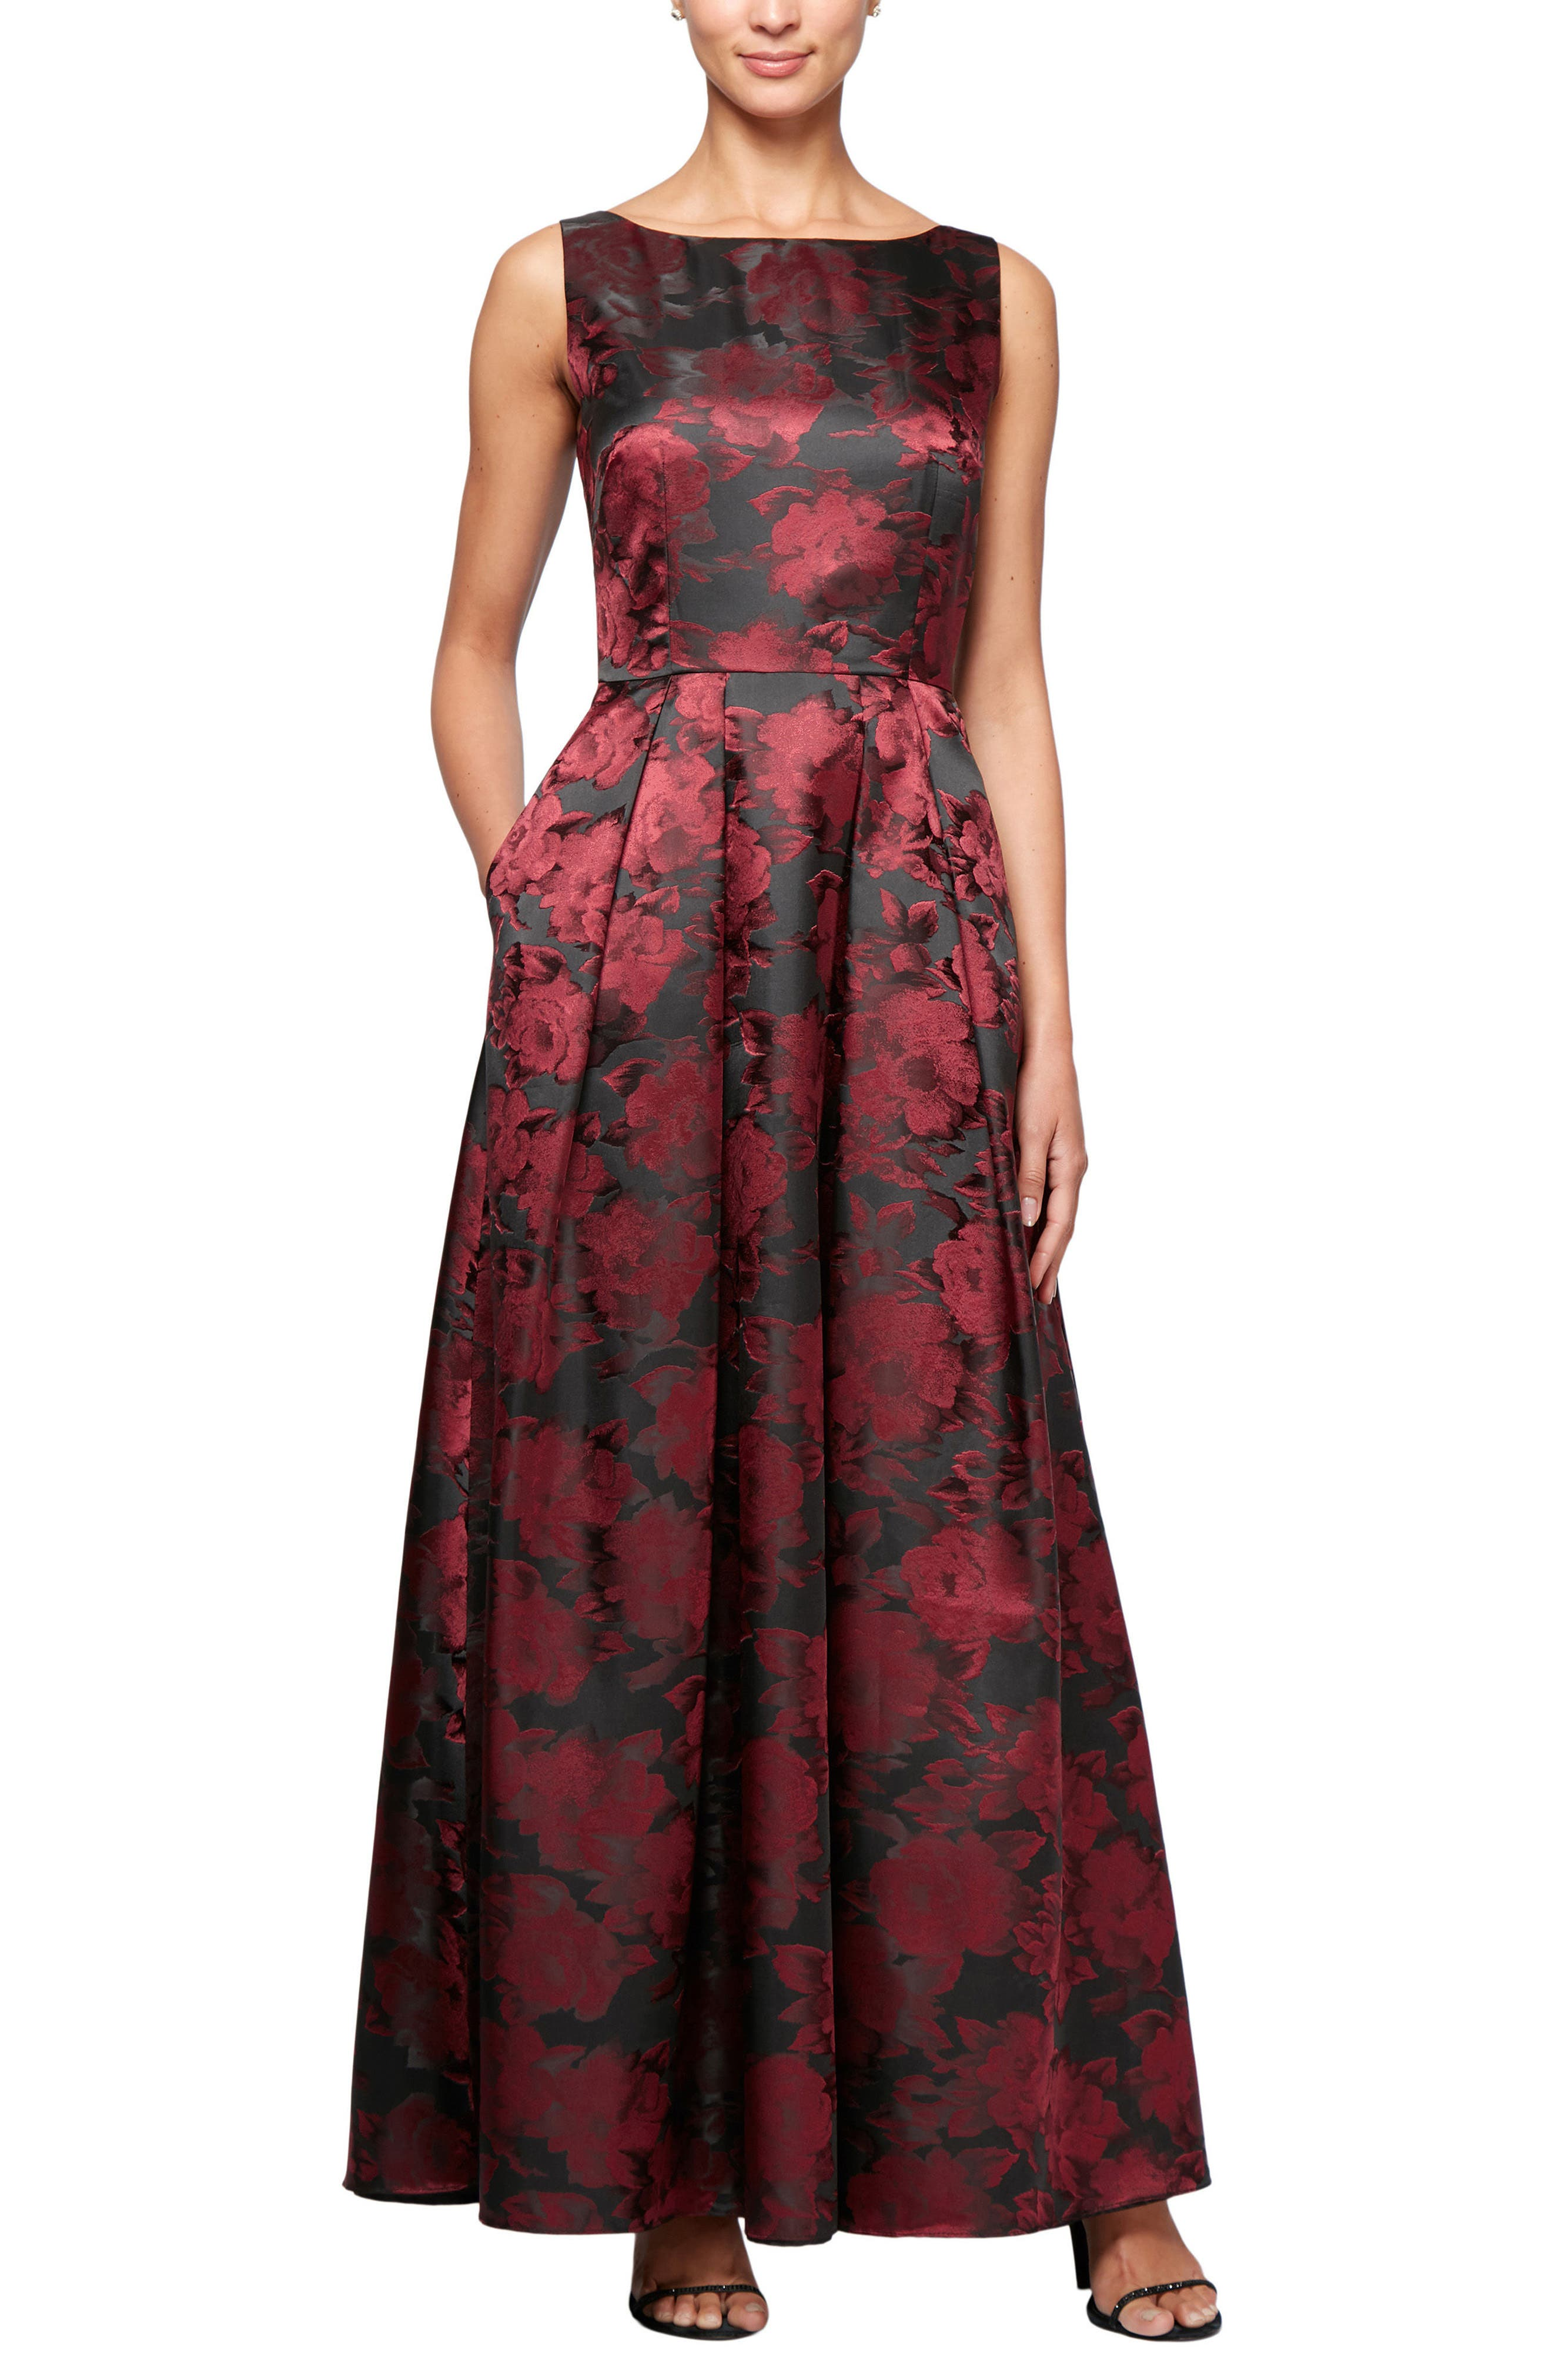 Alternate Image 1 Selected - Alex Evenings Floral Print A-Line Gown